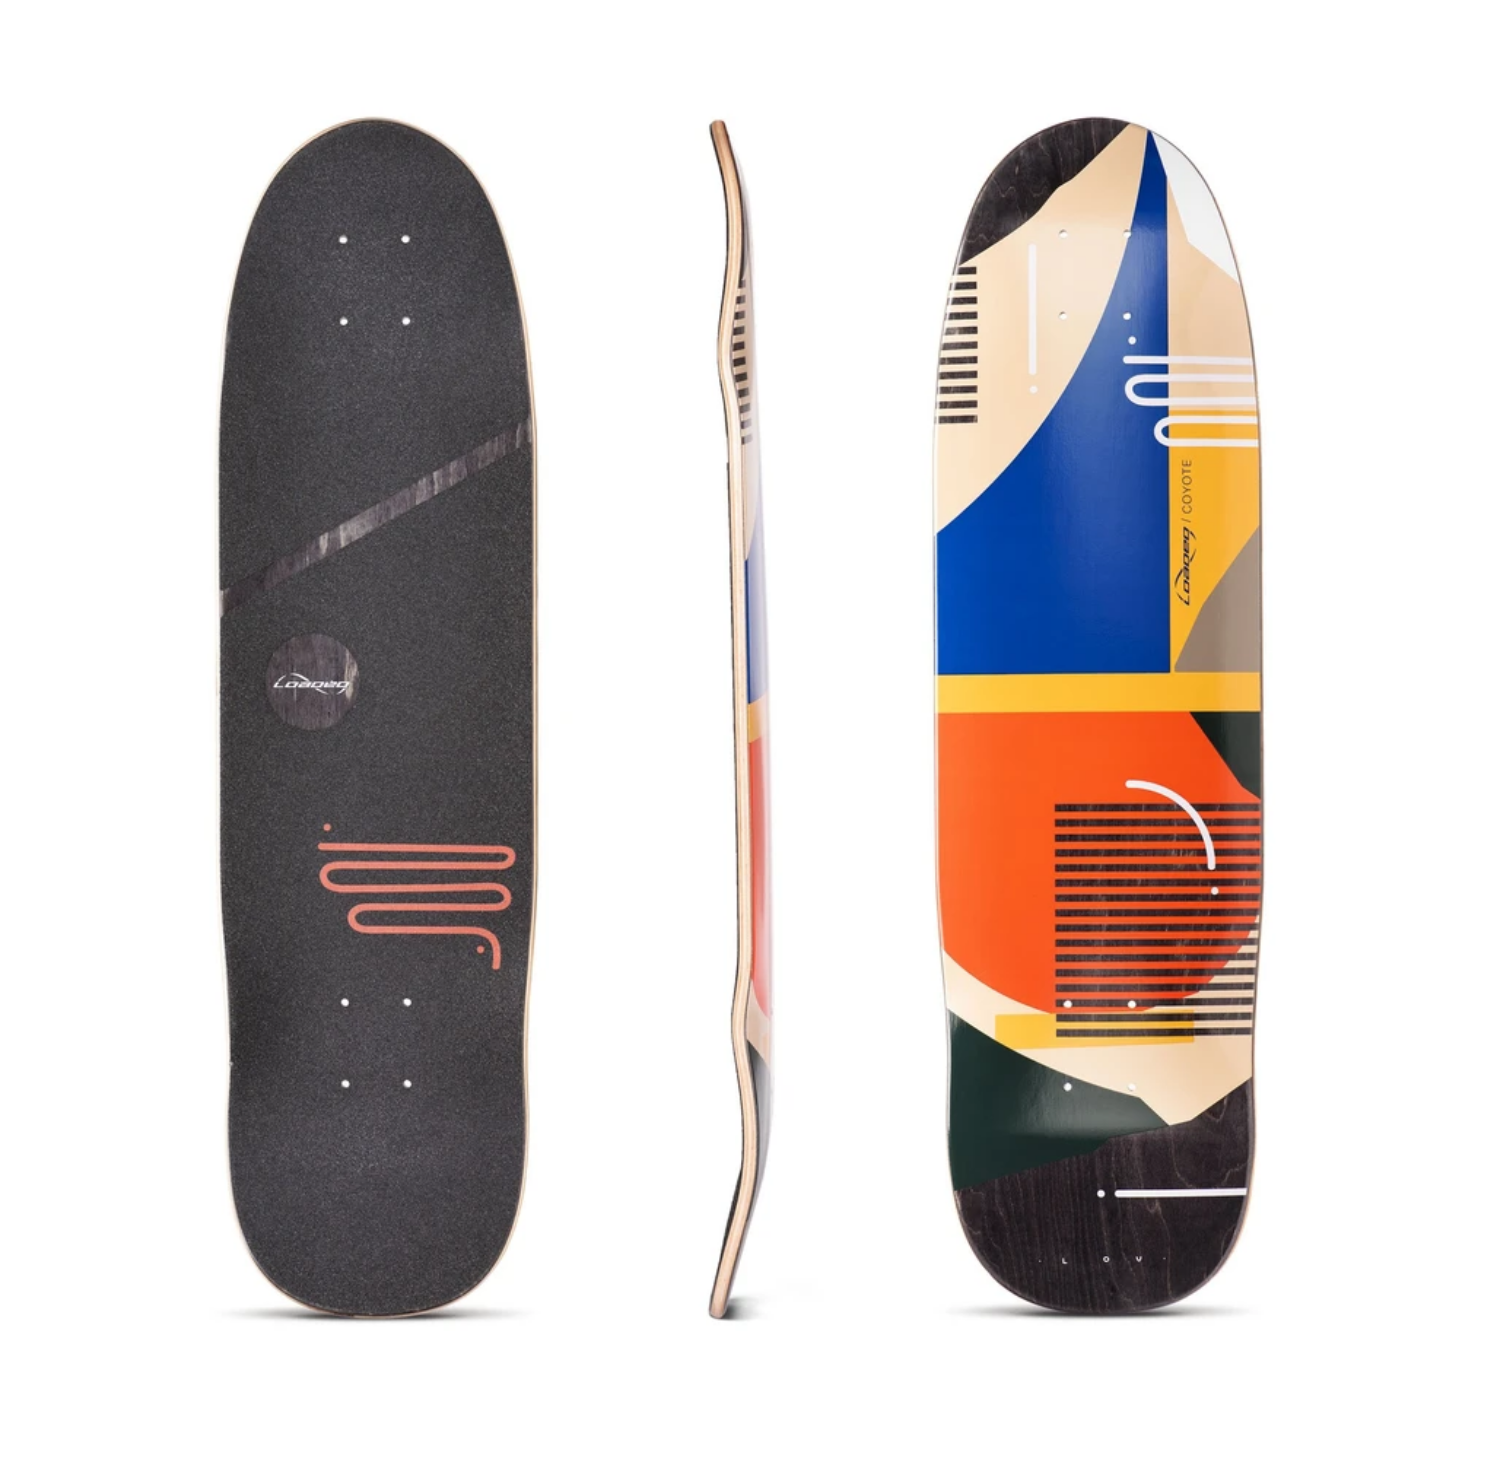 Loaded Coyote Hola Lou Deck w/ Grip